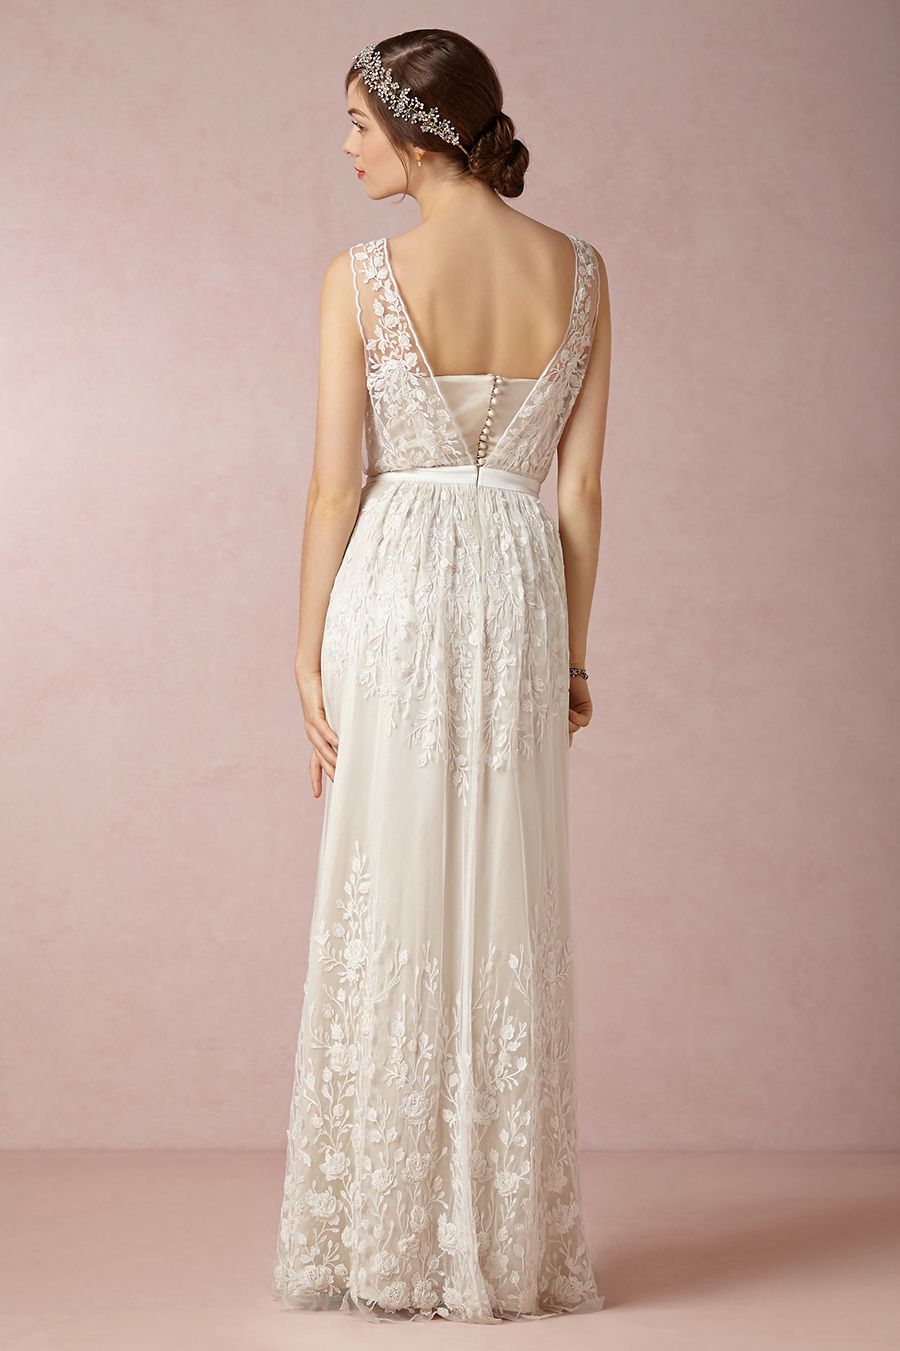 Best affordable wedding dress shops london  BHLDN Catherine Deane Lace and Silk Embroidered Wedding Dress